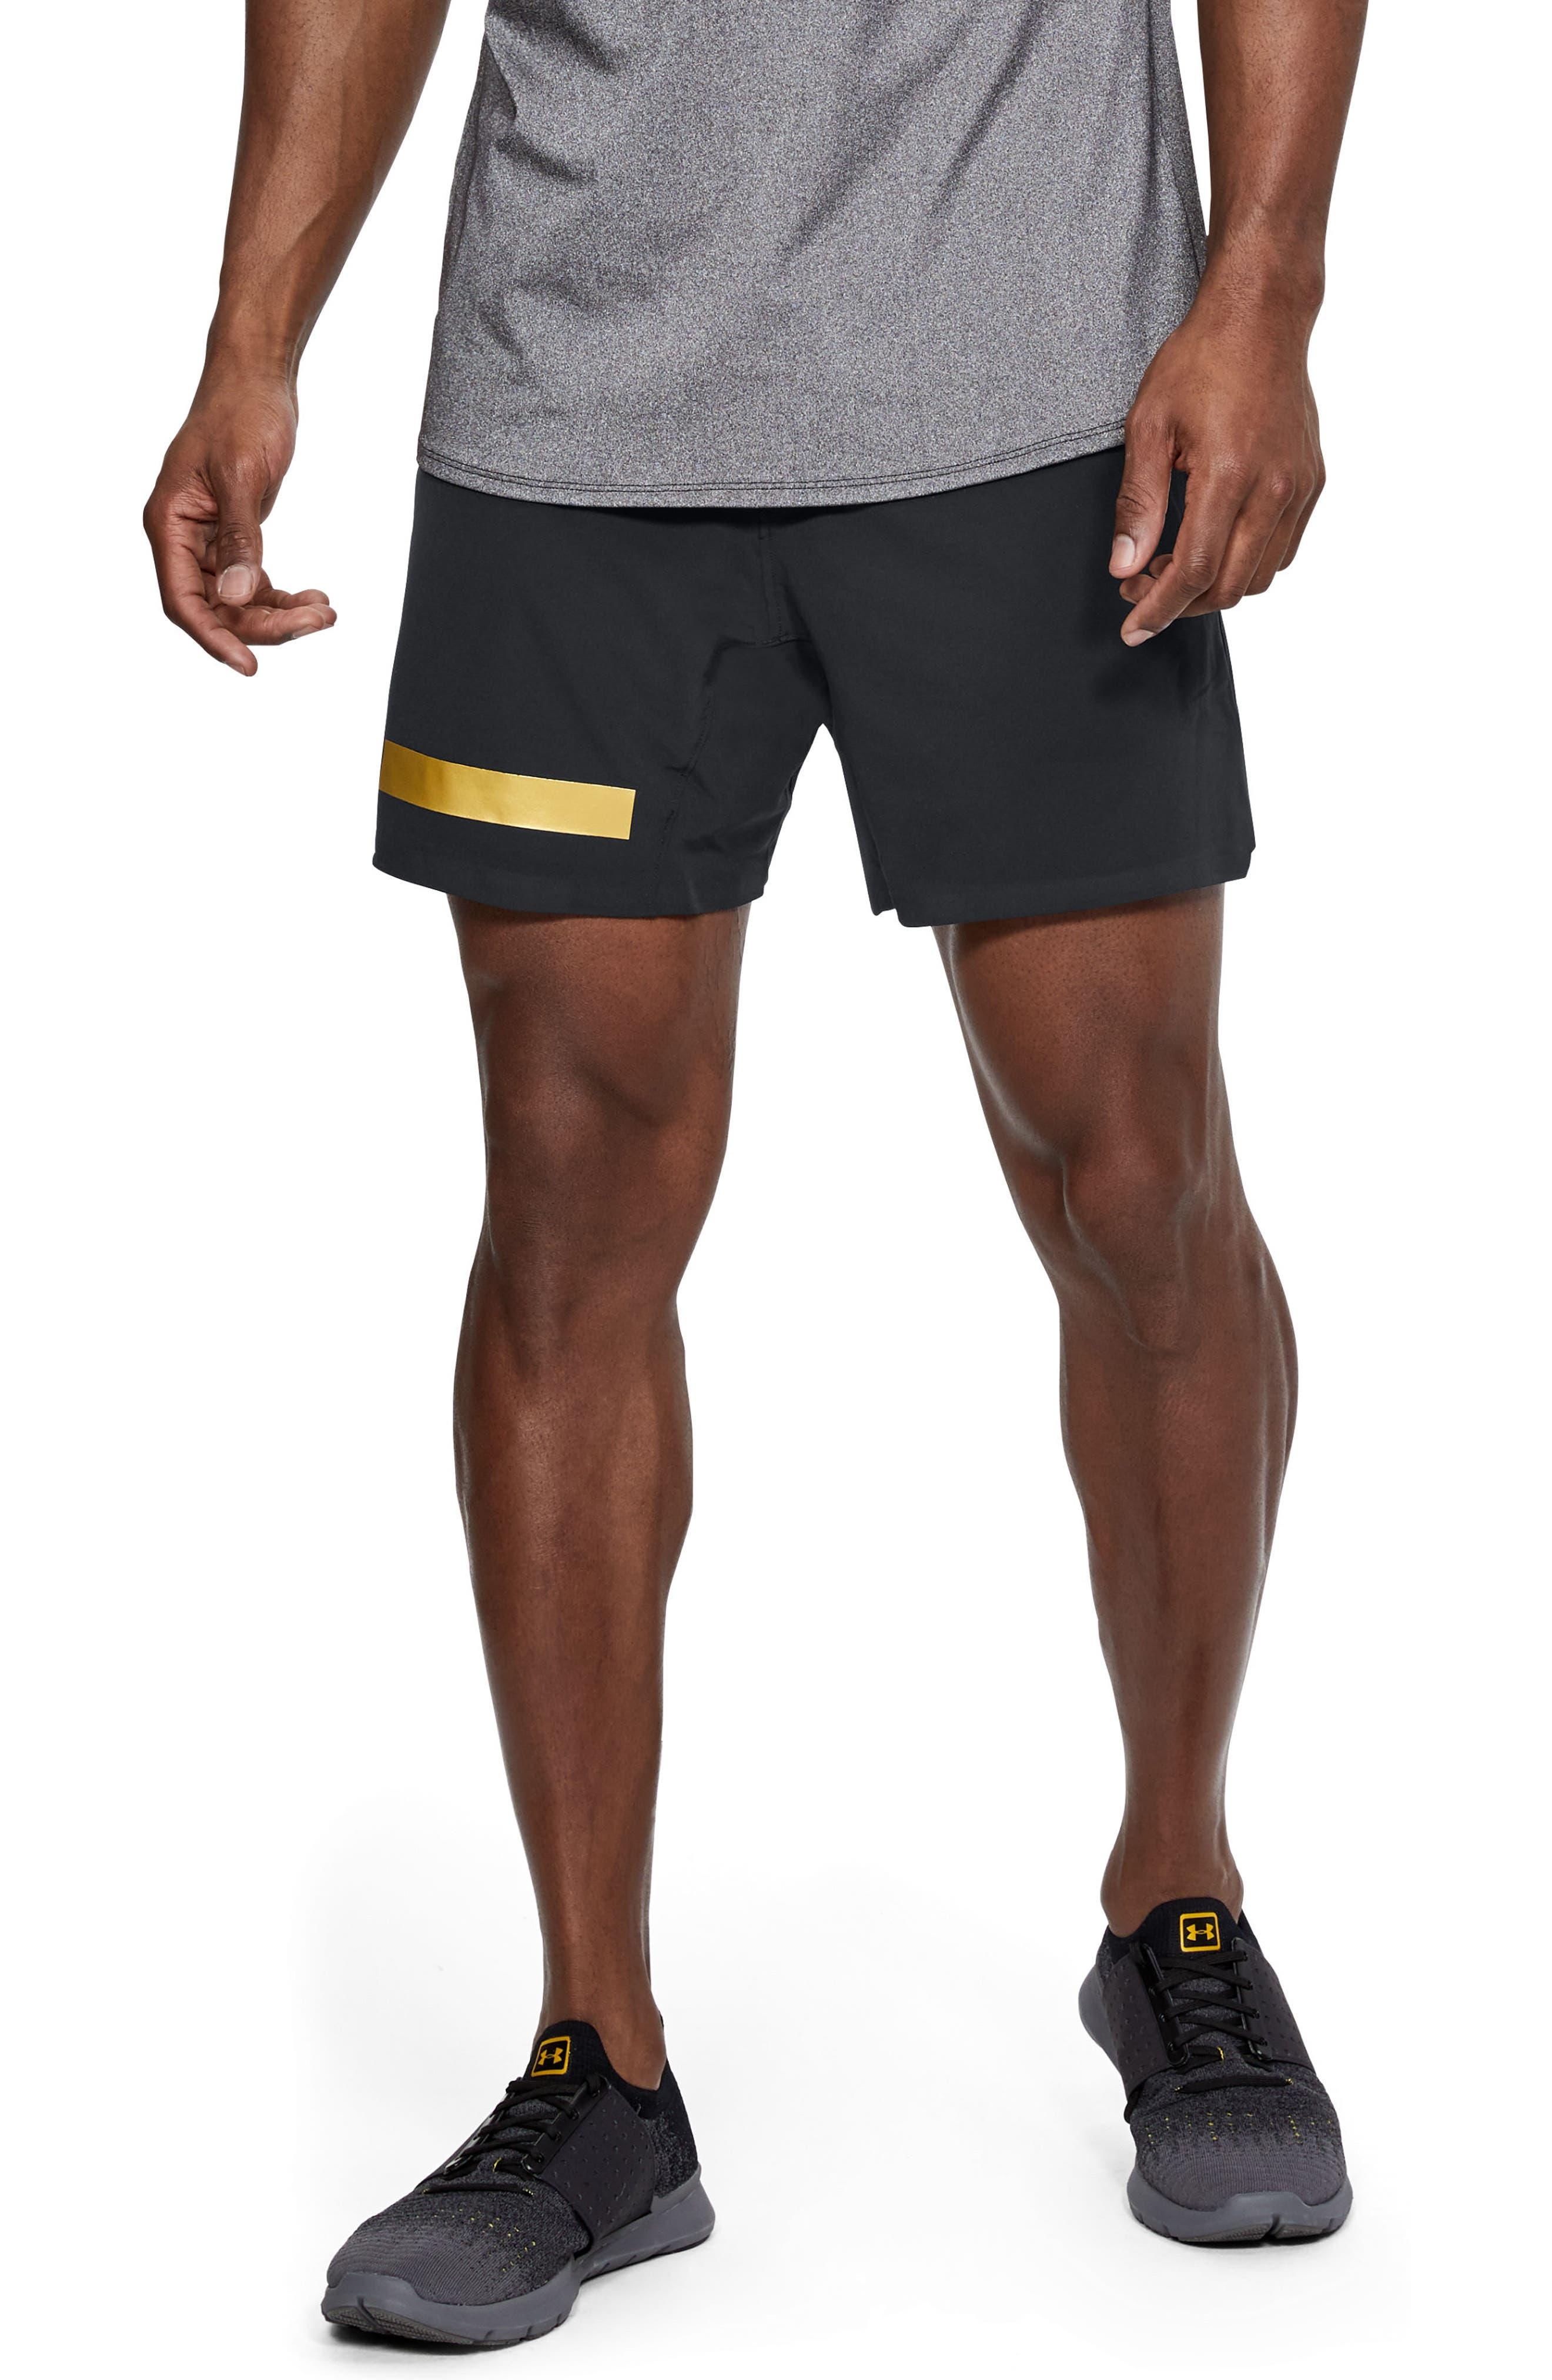 Perpetual Fitted Shorts,                             Main thumbnail 1, color,                             Black/ Metallic Victory Gold